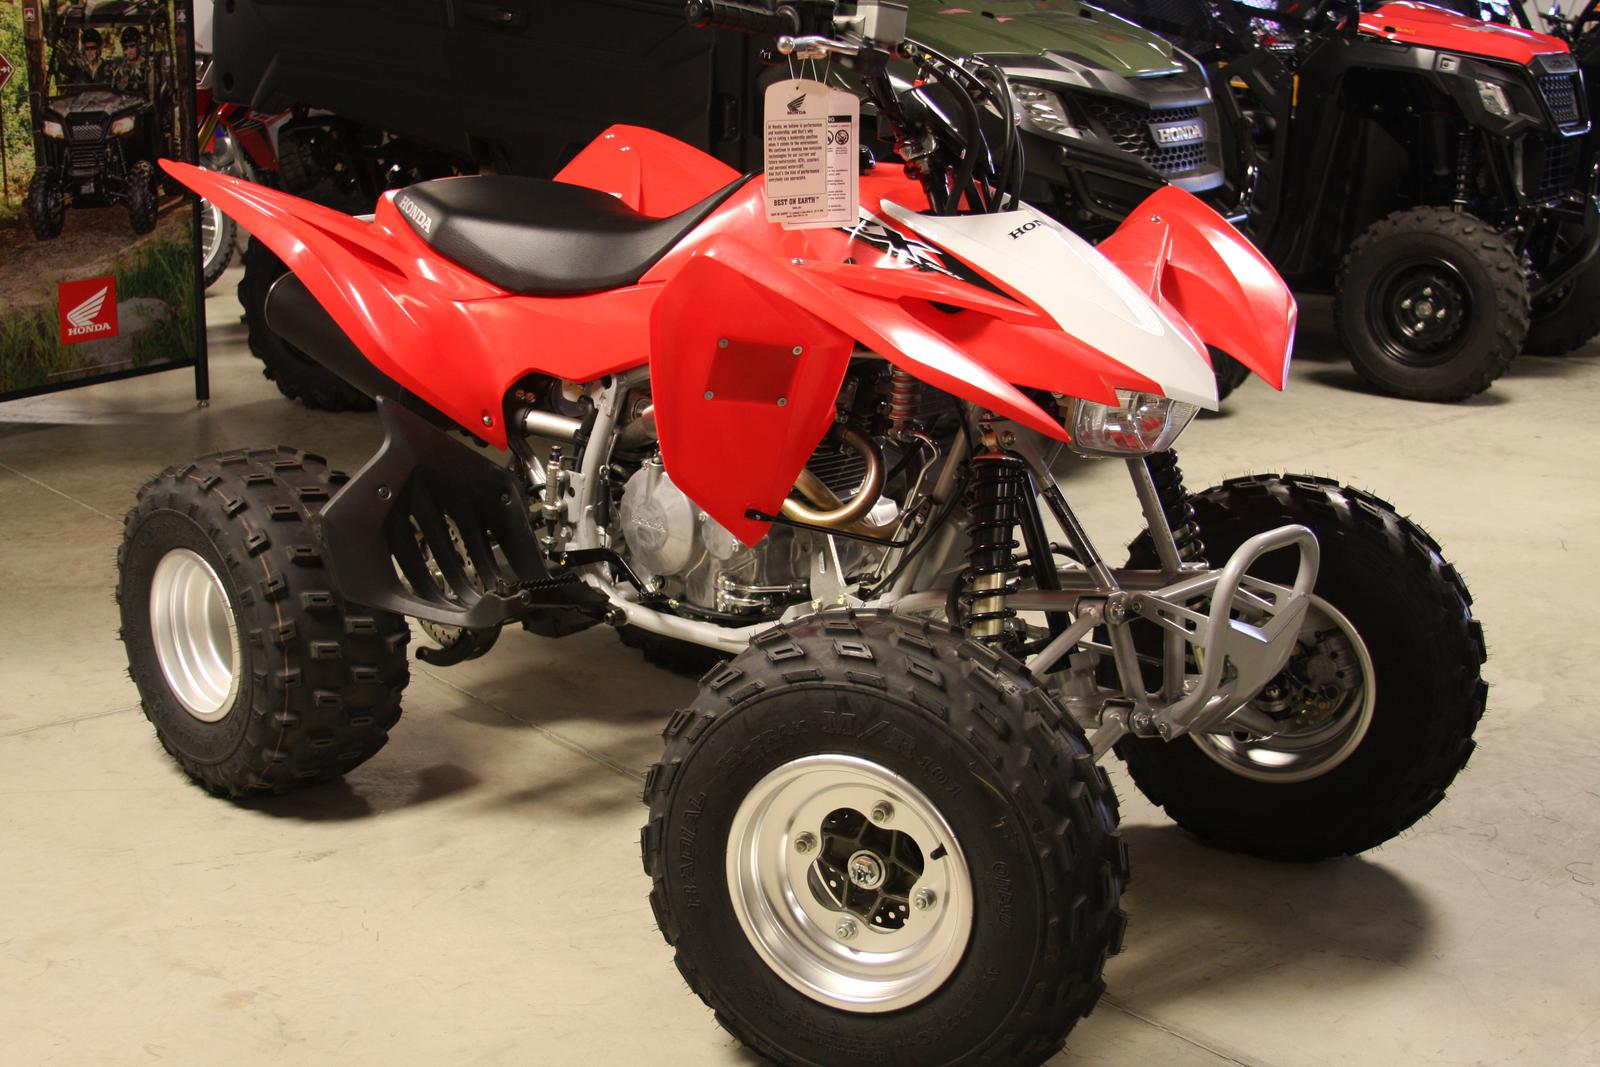 2013 Honda Trx400ex Motorcycle From York Pa Today Sale 5 499